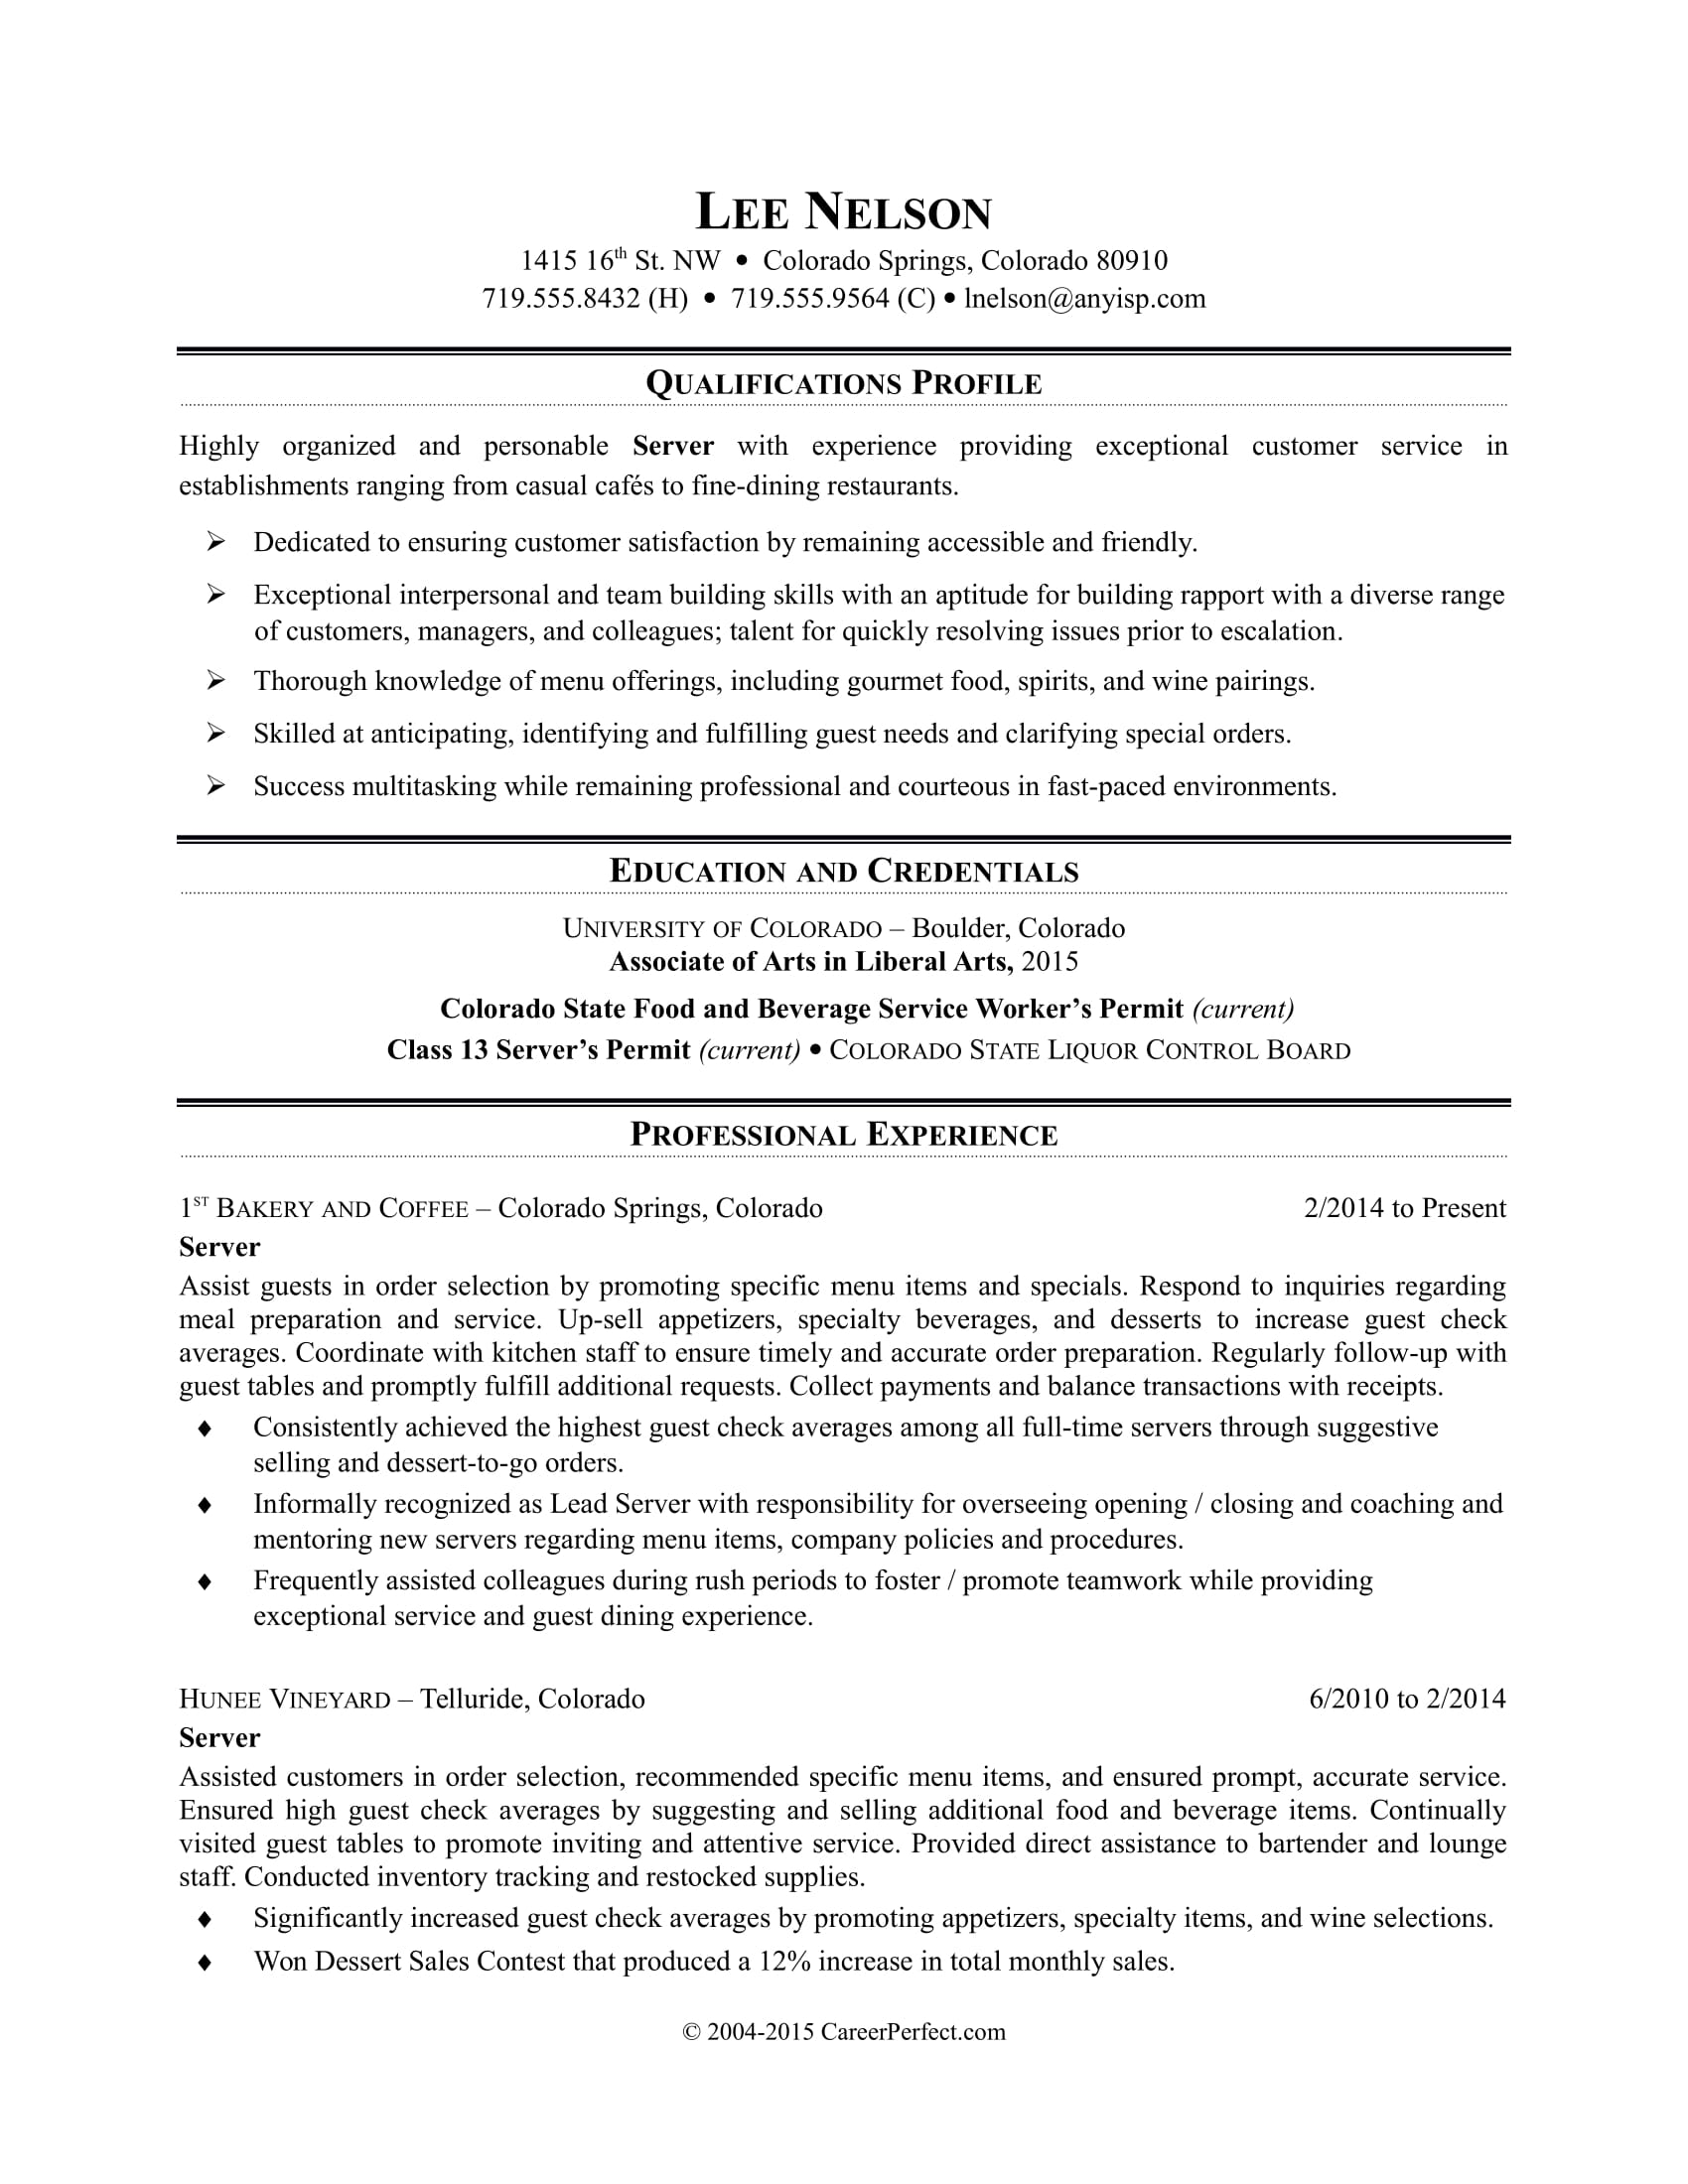 Attractive Sample Resume For A Restaurant Server Intended For Resume For Restaurant